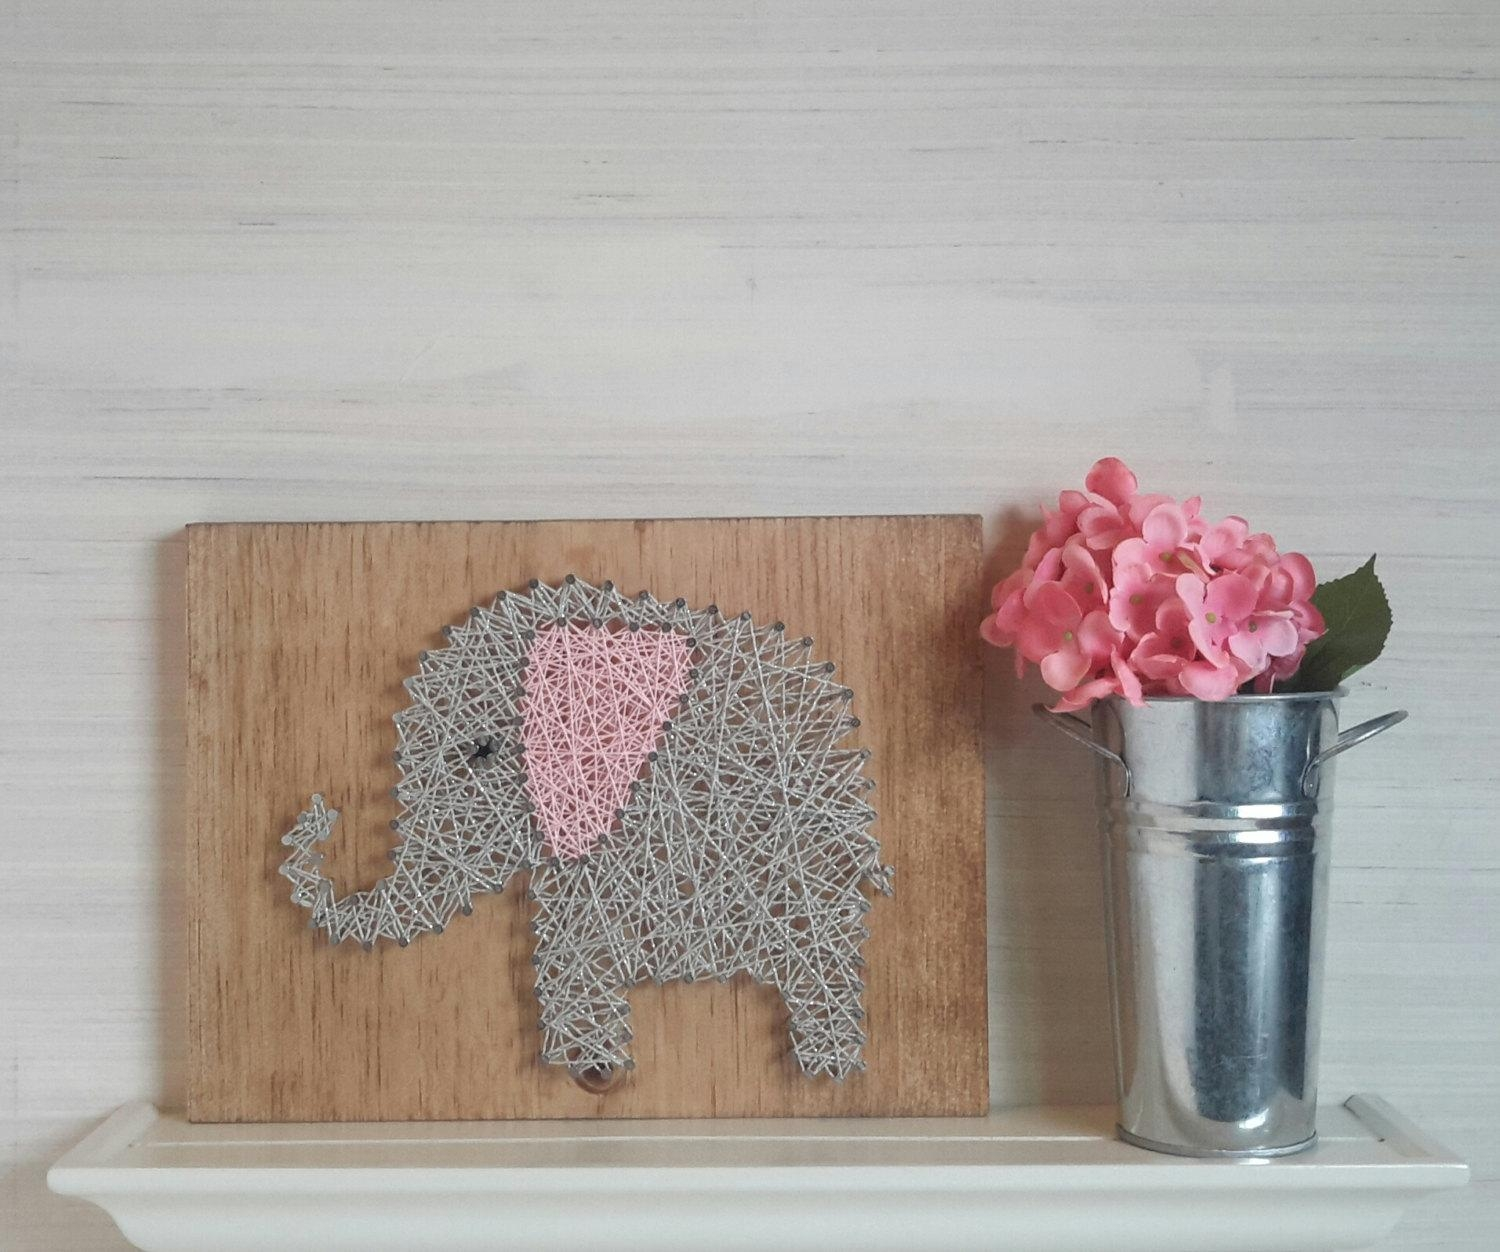 Baby Elephant String Art Wooden Wall Art For Girls Nursery With Regard To Pink And Grey Wall Art (Image 2 of 20)